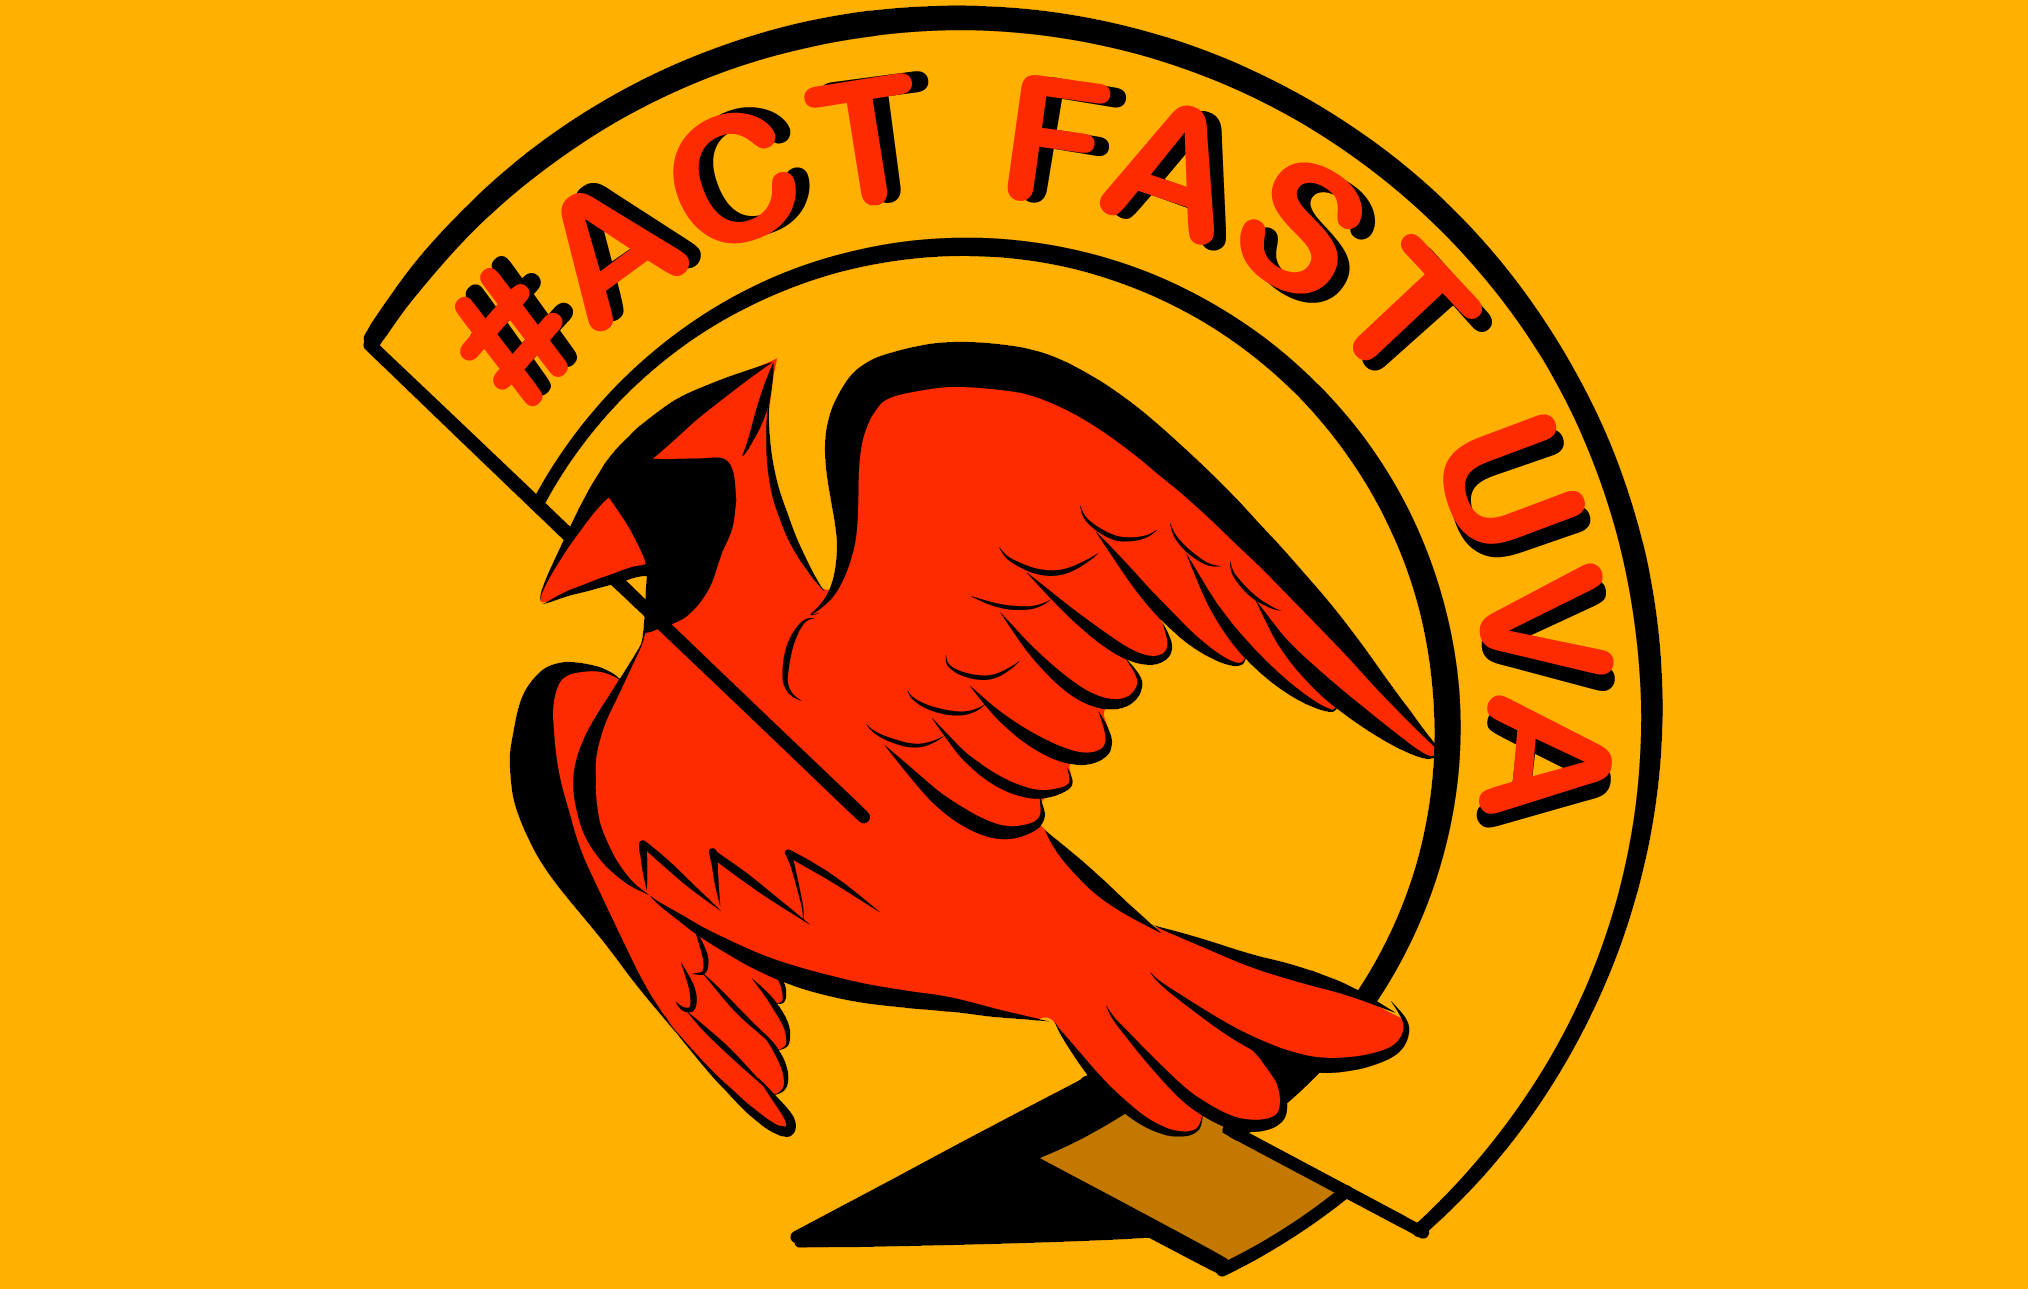 """ID: #ActFastUVA logo. A red cardinal holds a yellow banner in its beak reading """"#Act Fast UVA"""" in red, on a yellow background"""